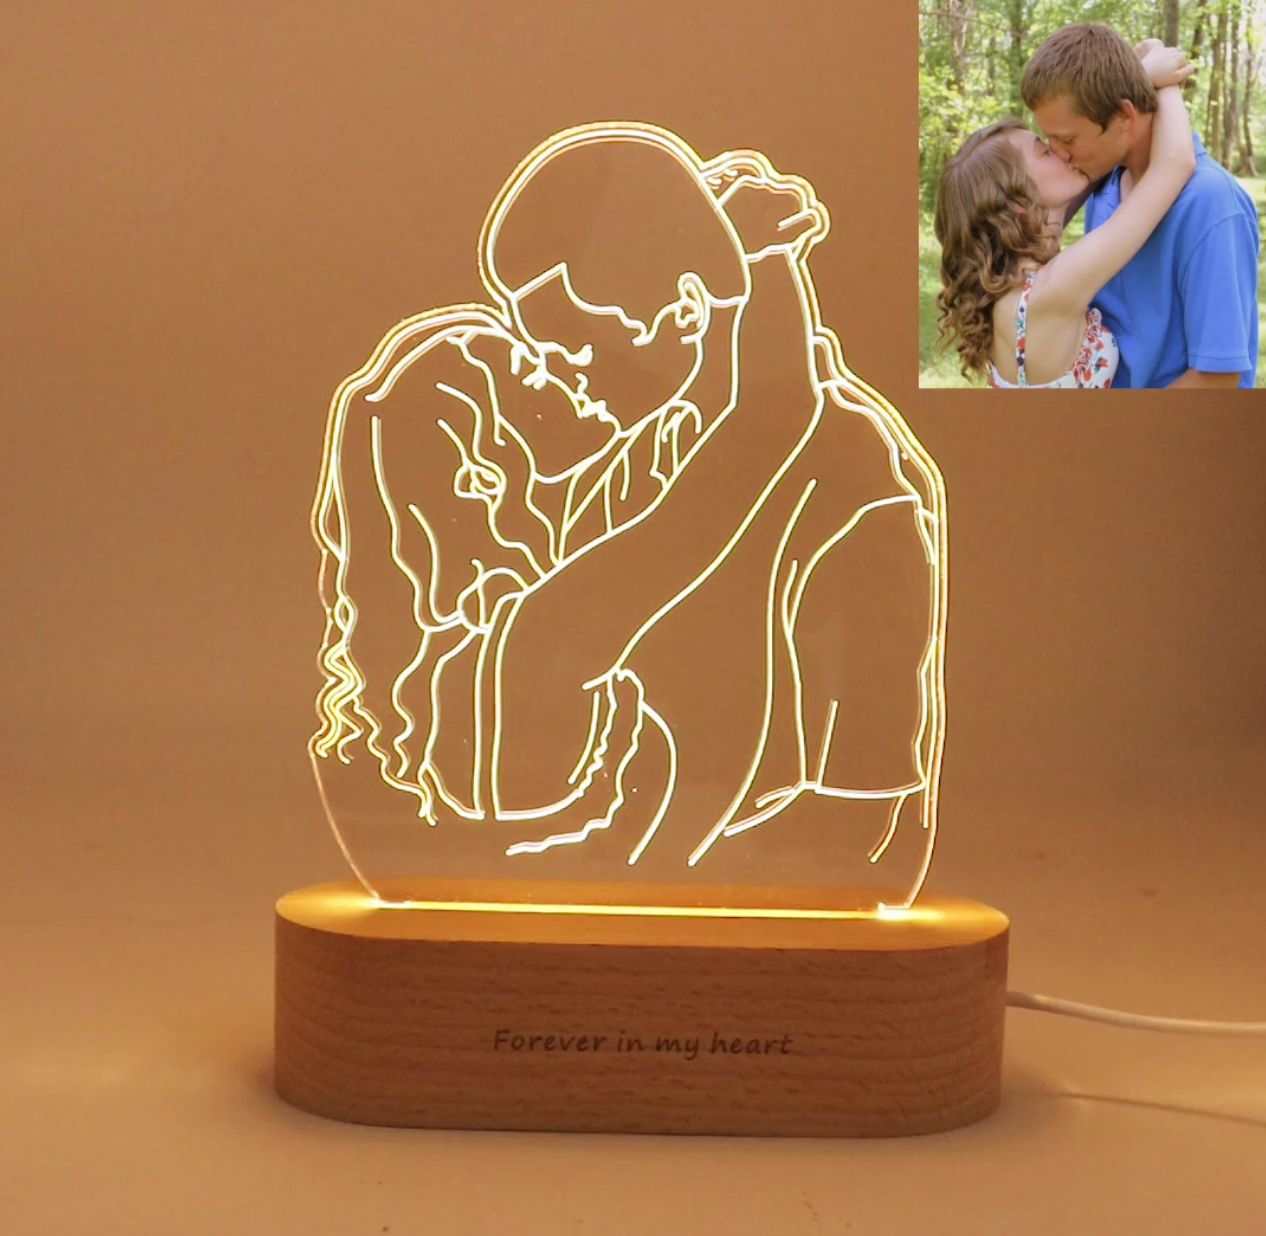 Custom Personalized Photo Transformed Into Your Very Own Neon 3d Lamp With Your Face On It Boyfriend Anniversary Gifts Photo Lamp Boyfriend Gifts